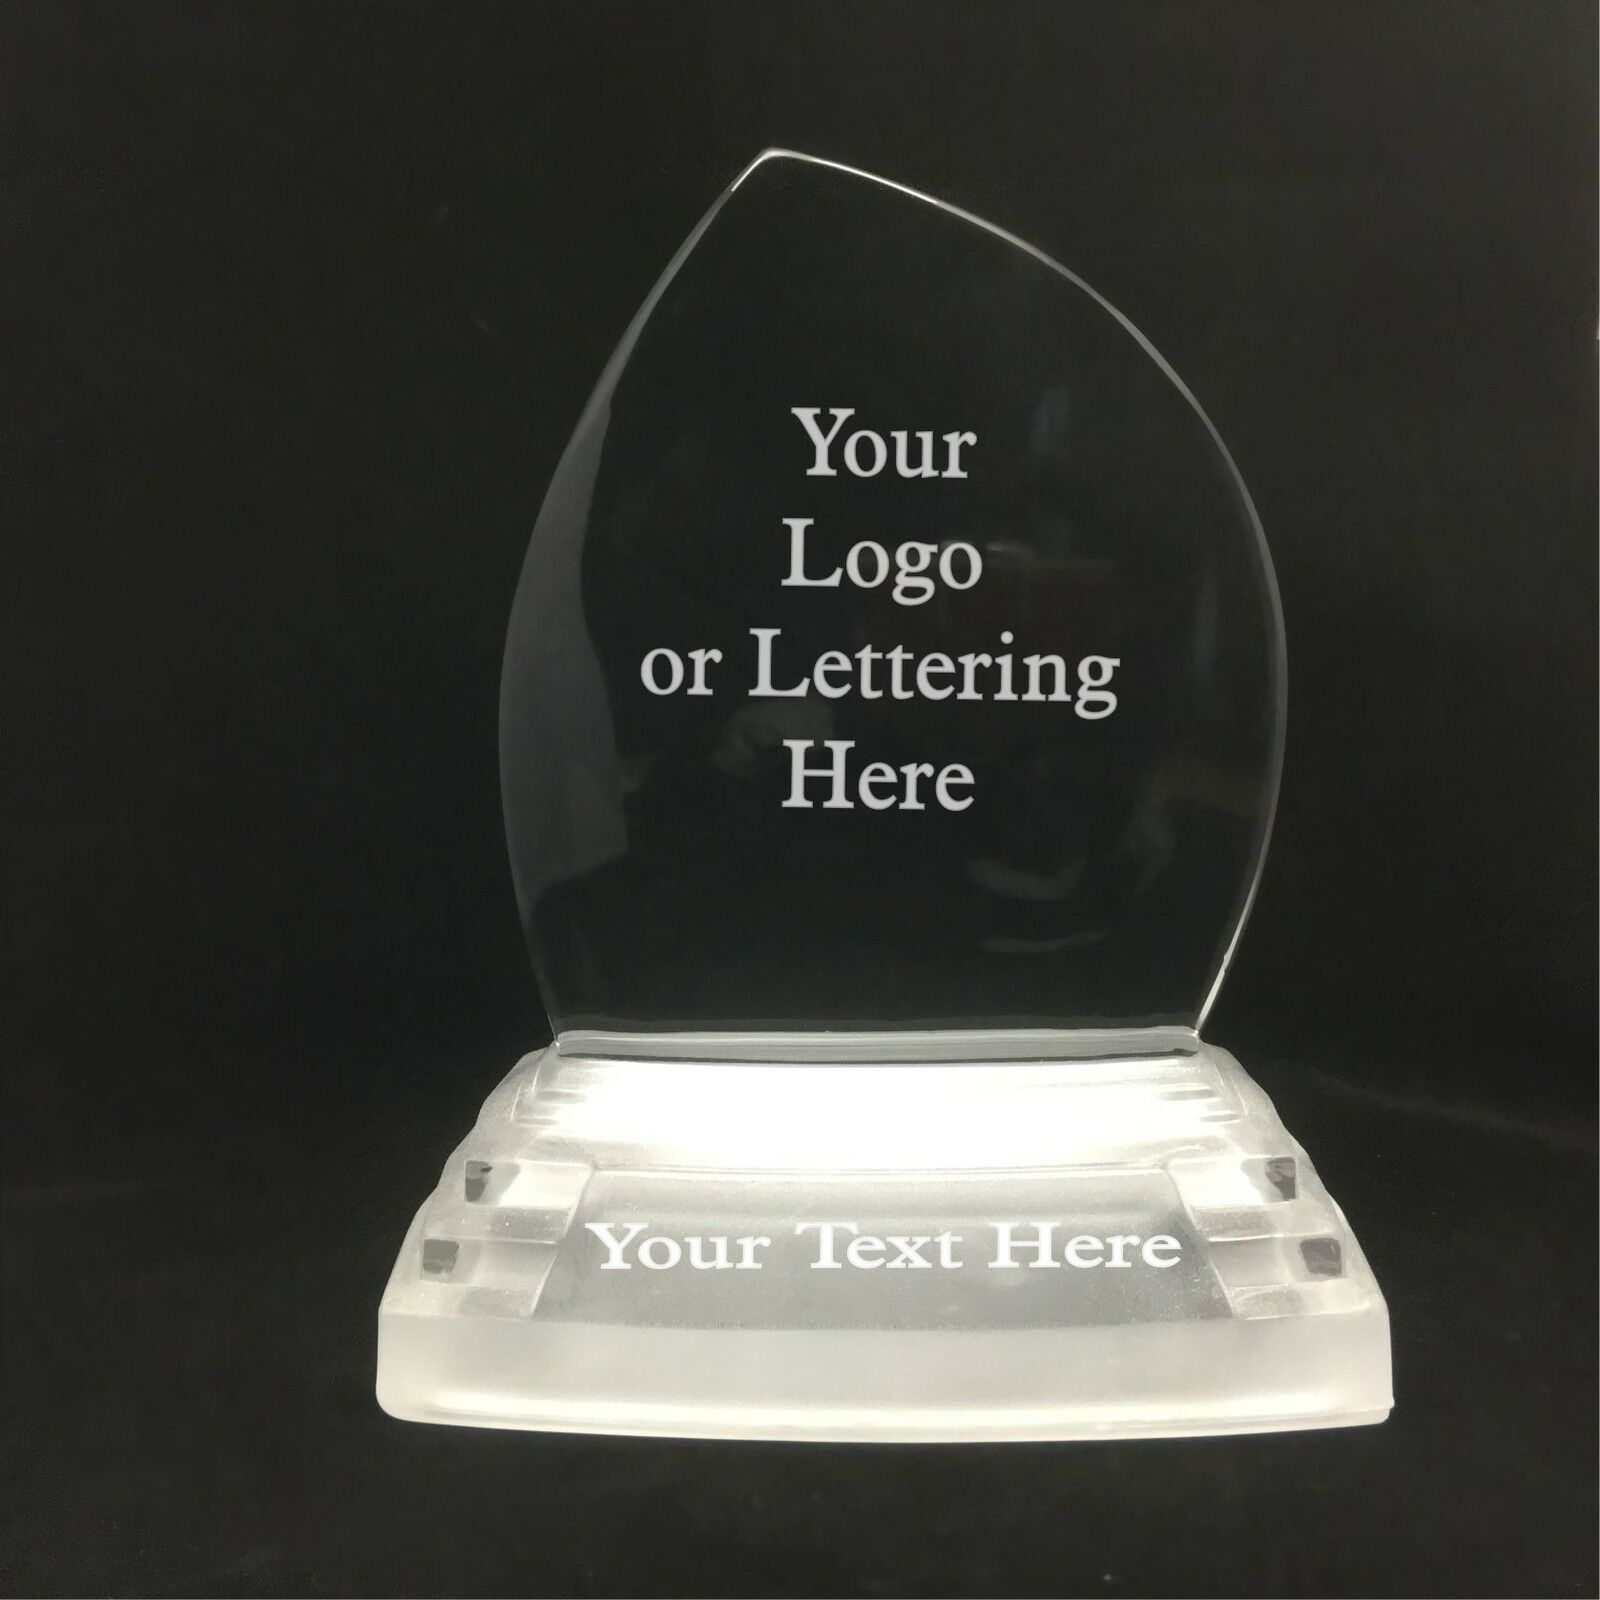 Personalised Engraved Glass Iceberg Style Award -  Corporate Staff Recognition